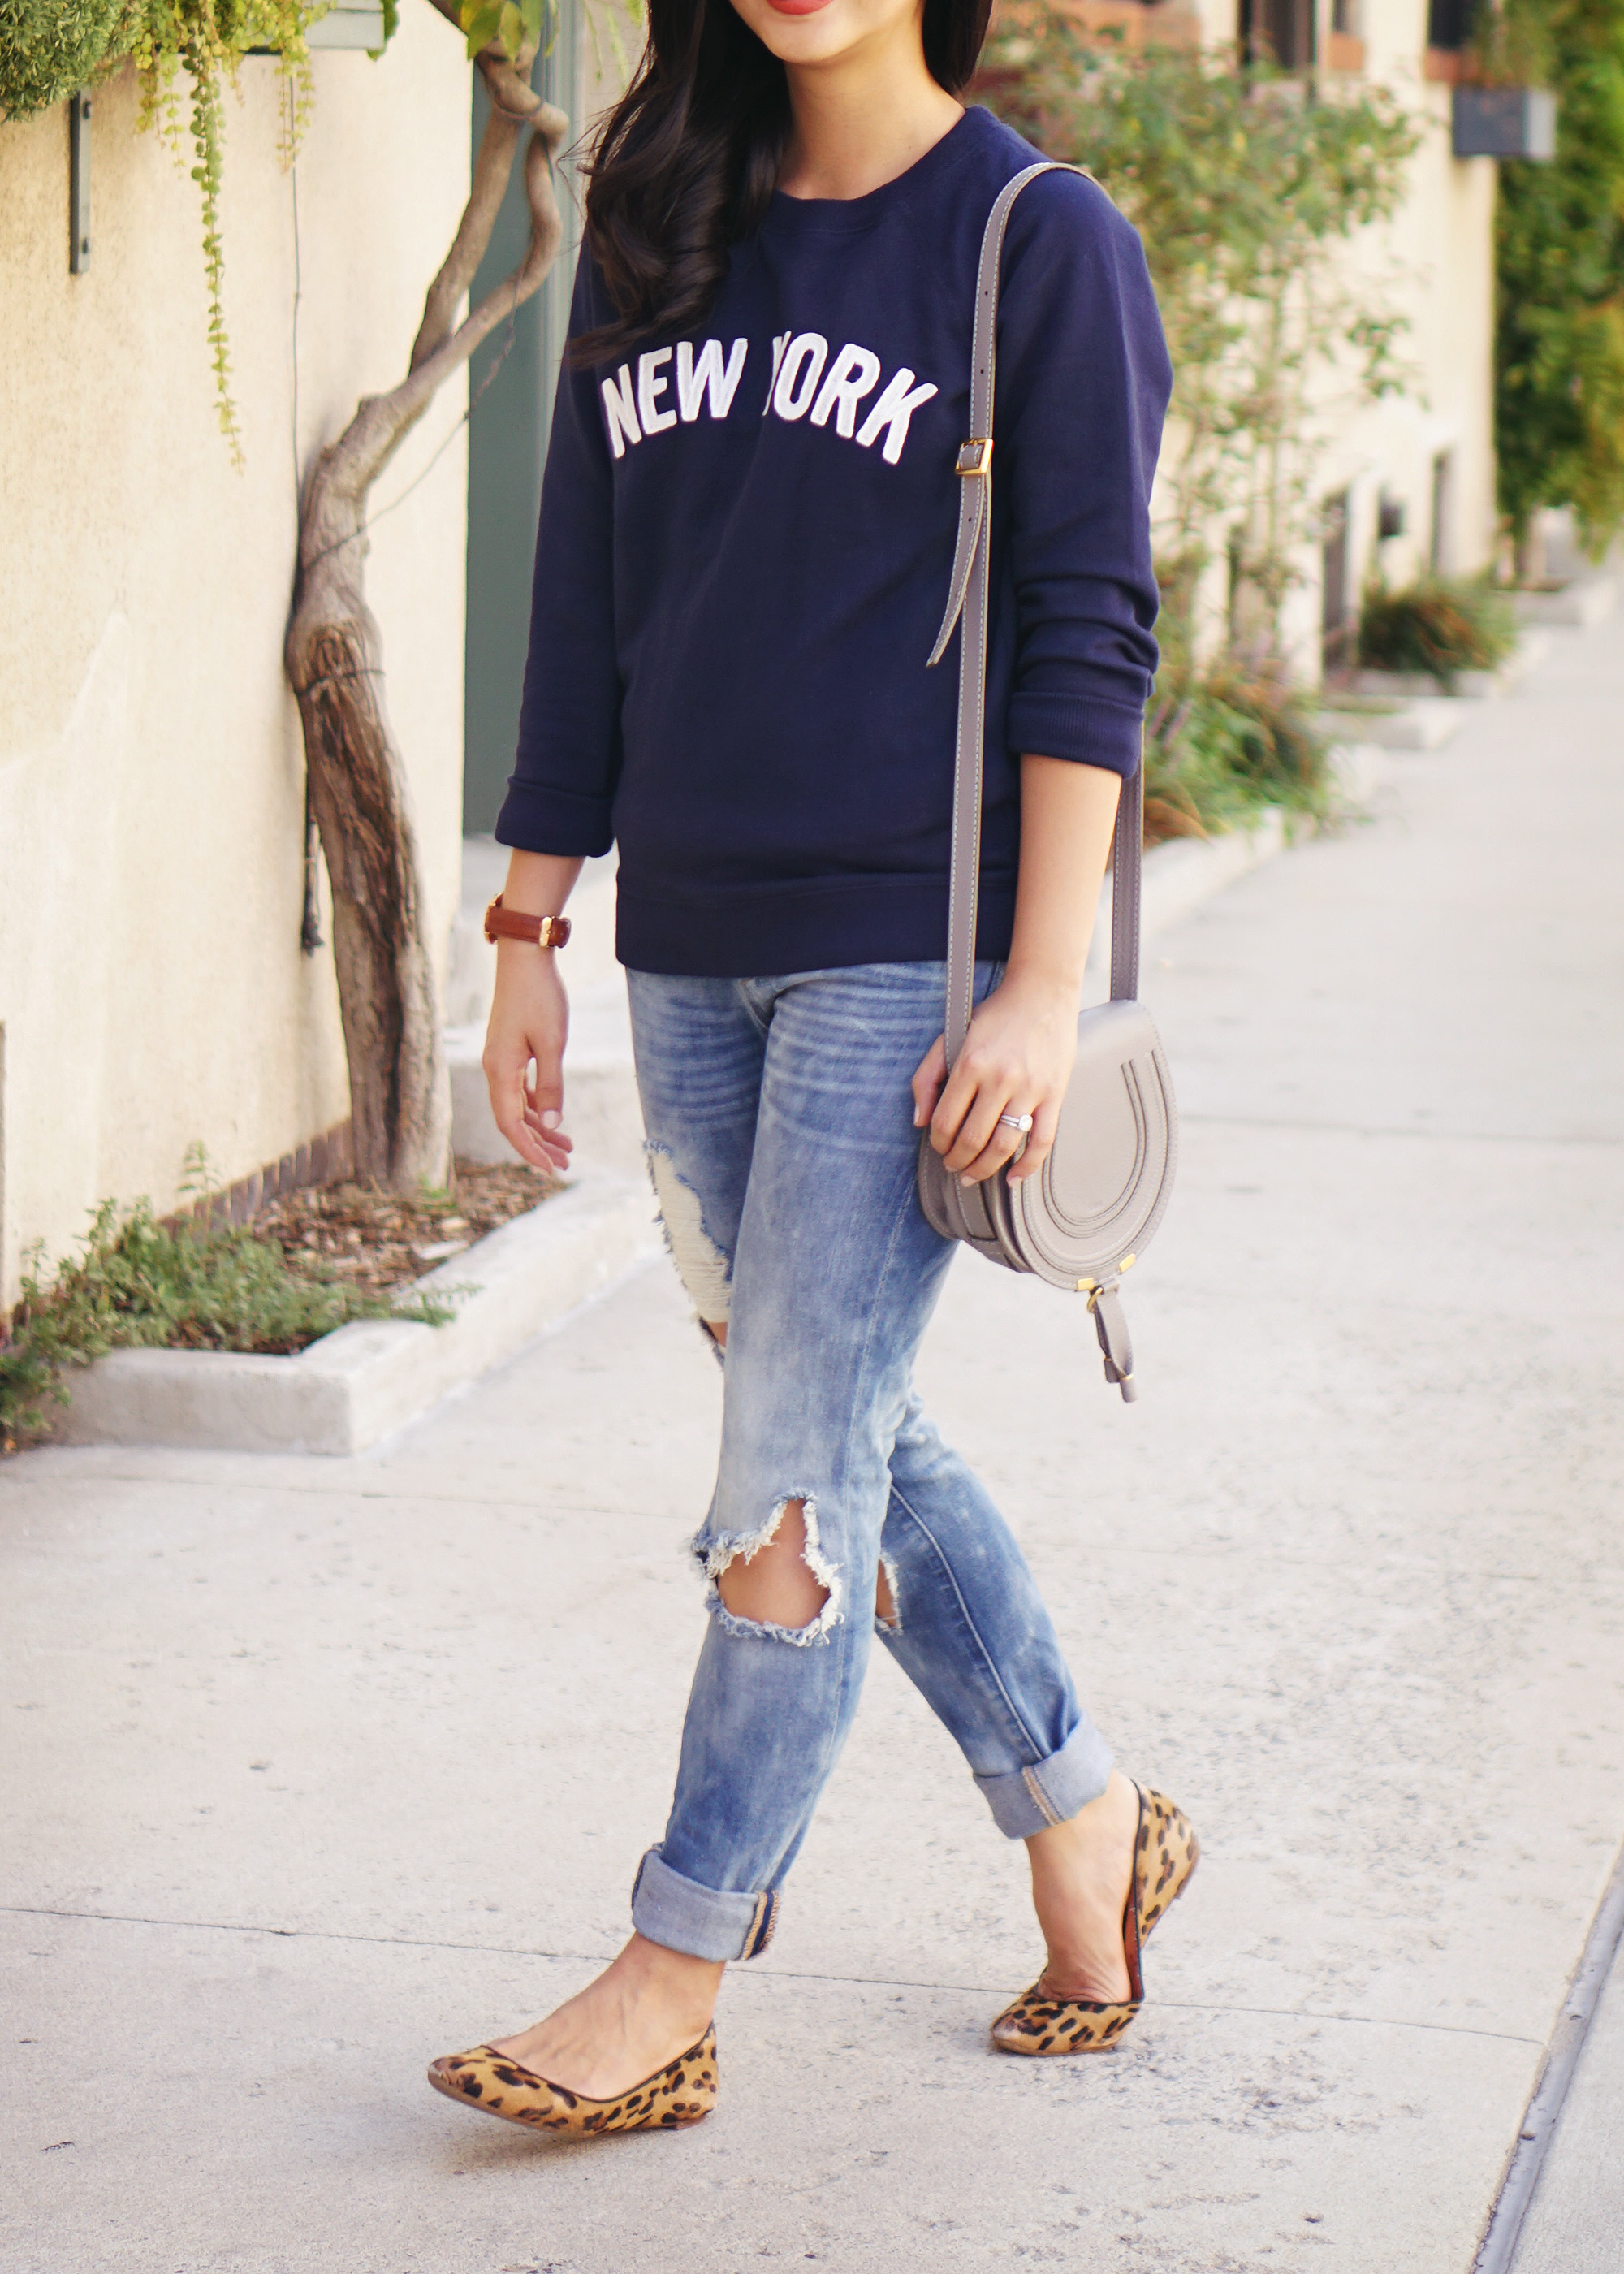 Fall Style / New York Graphic Sweatshirt & Ripped Jeans